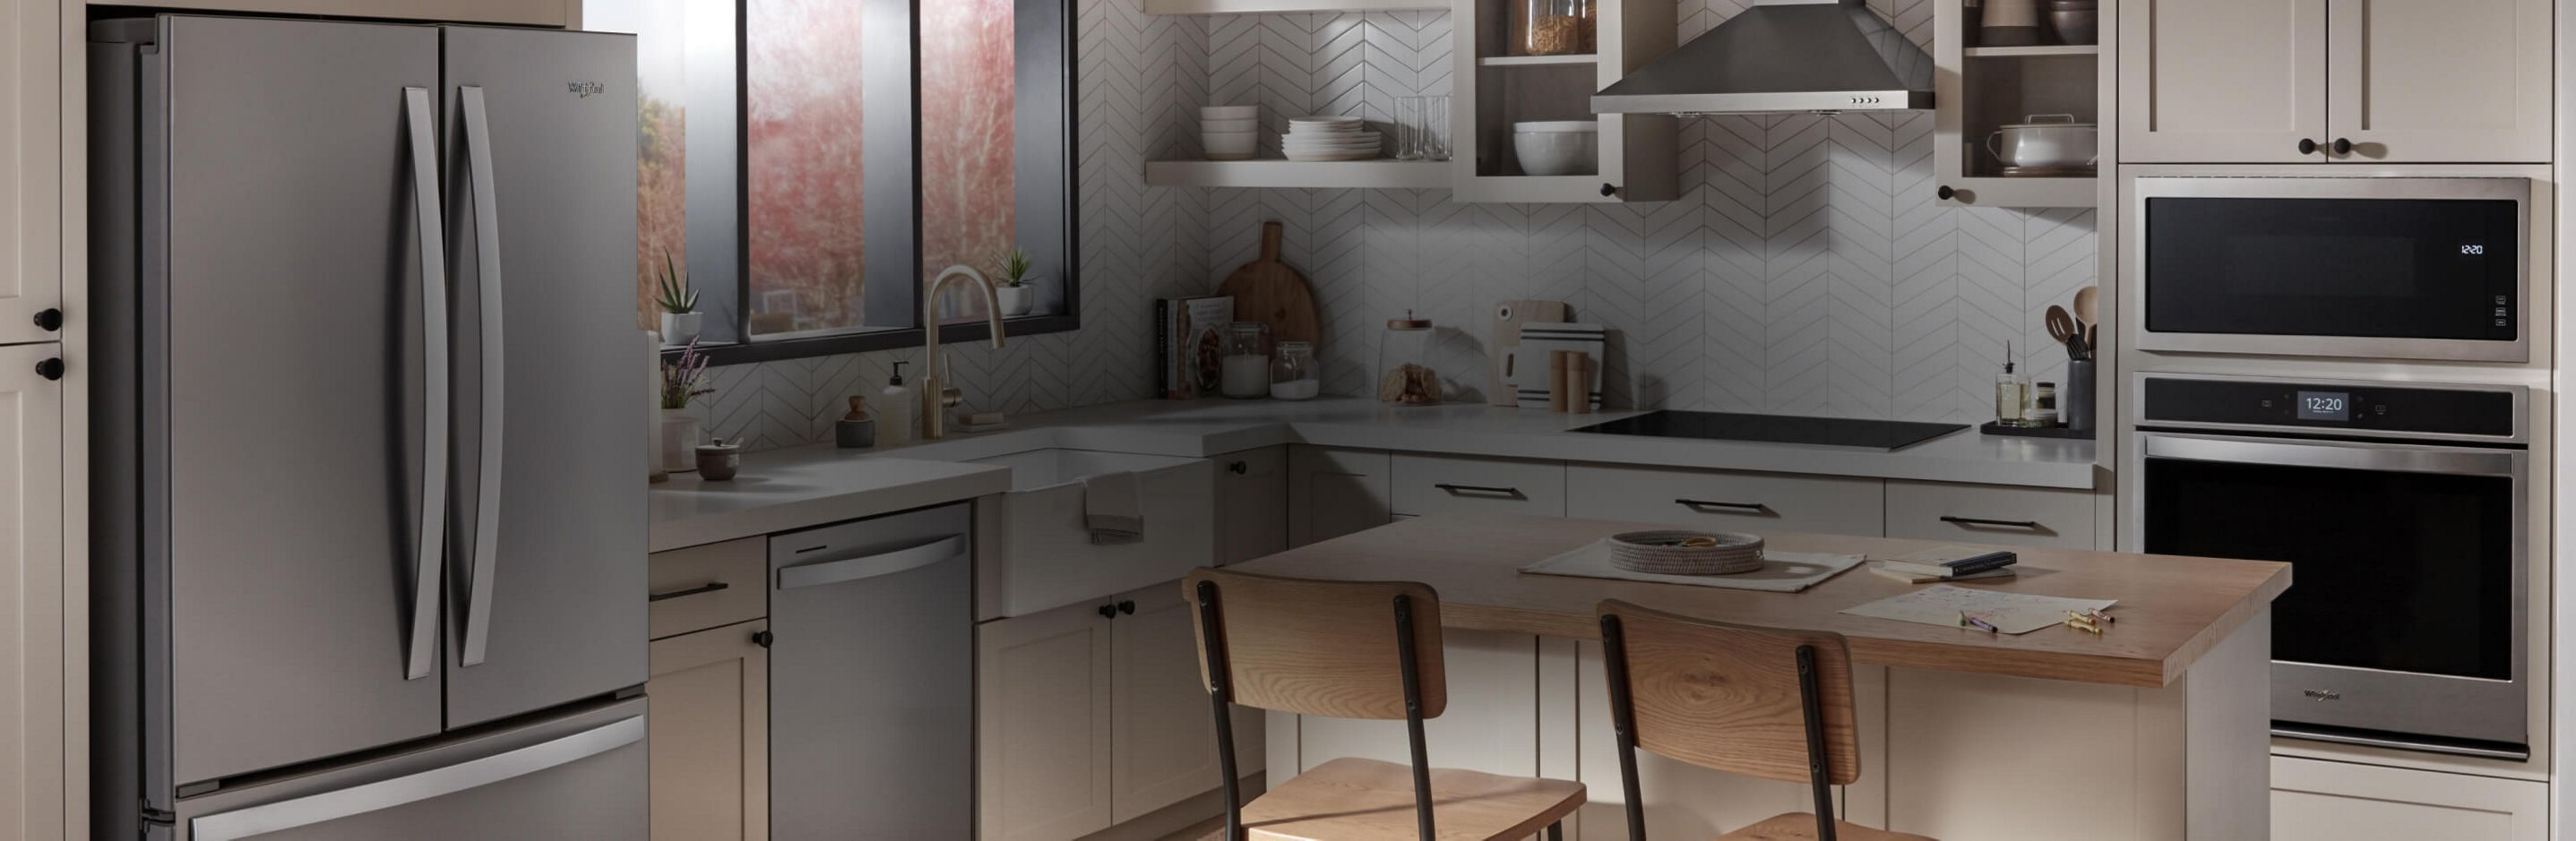 A kitchen equipped with Whirlpool® appliances.